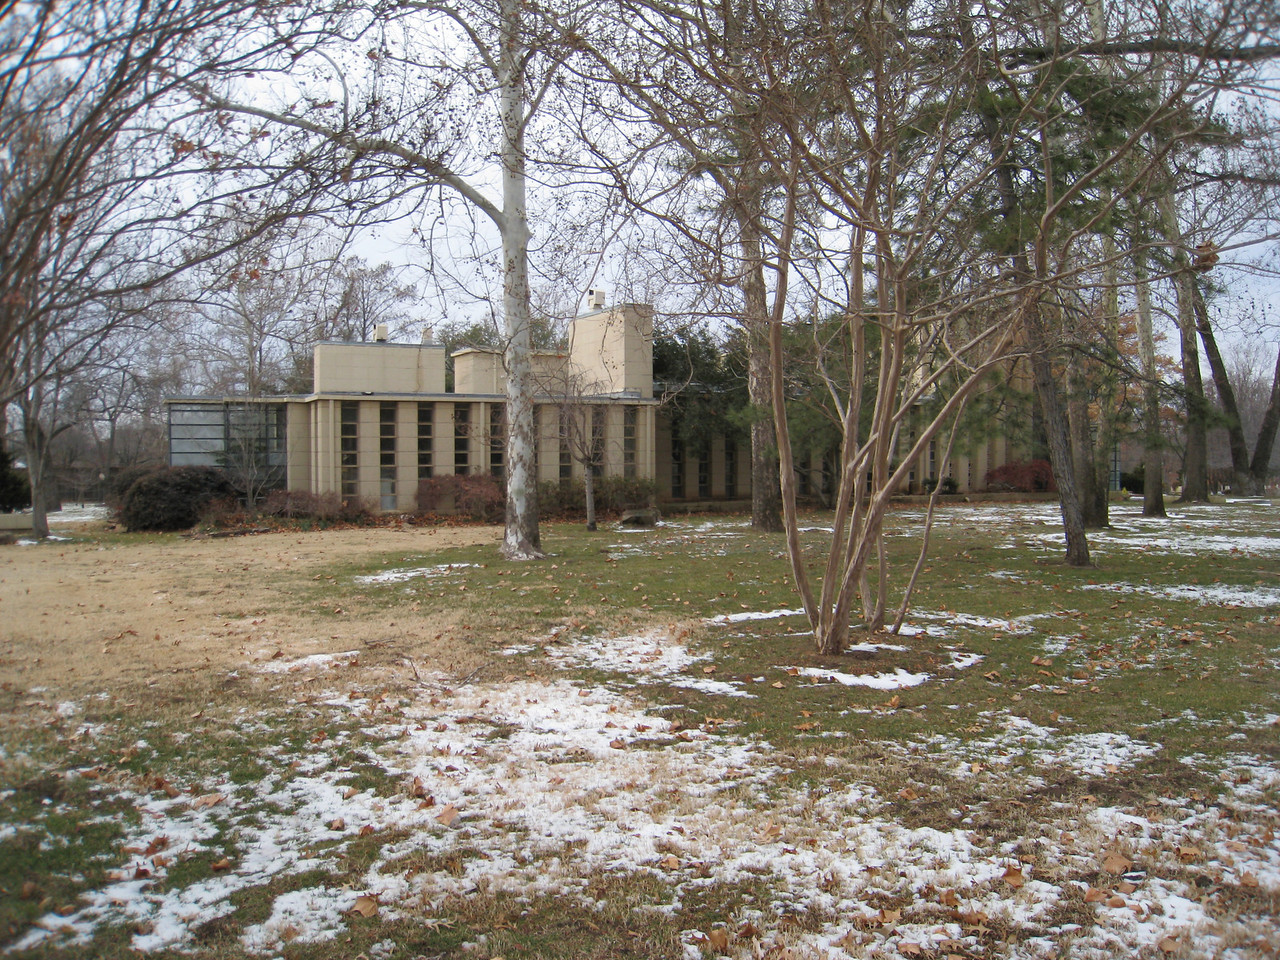 Frank Lloyd Wright's house designed and built for Richard Lloyd Jones, Frank's cousin. A.K.A. Westhope, built in 1929. 10,405sq. ft. Estimated value as of 1-27-2011, $1.13 million.